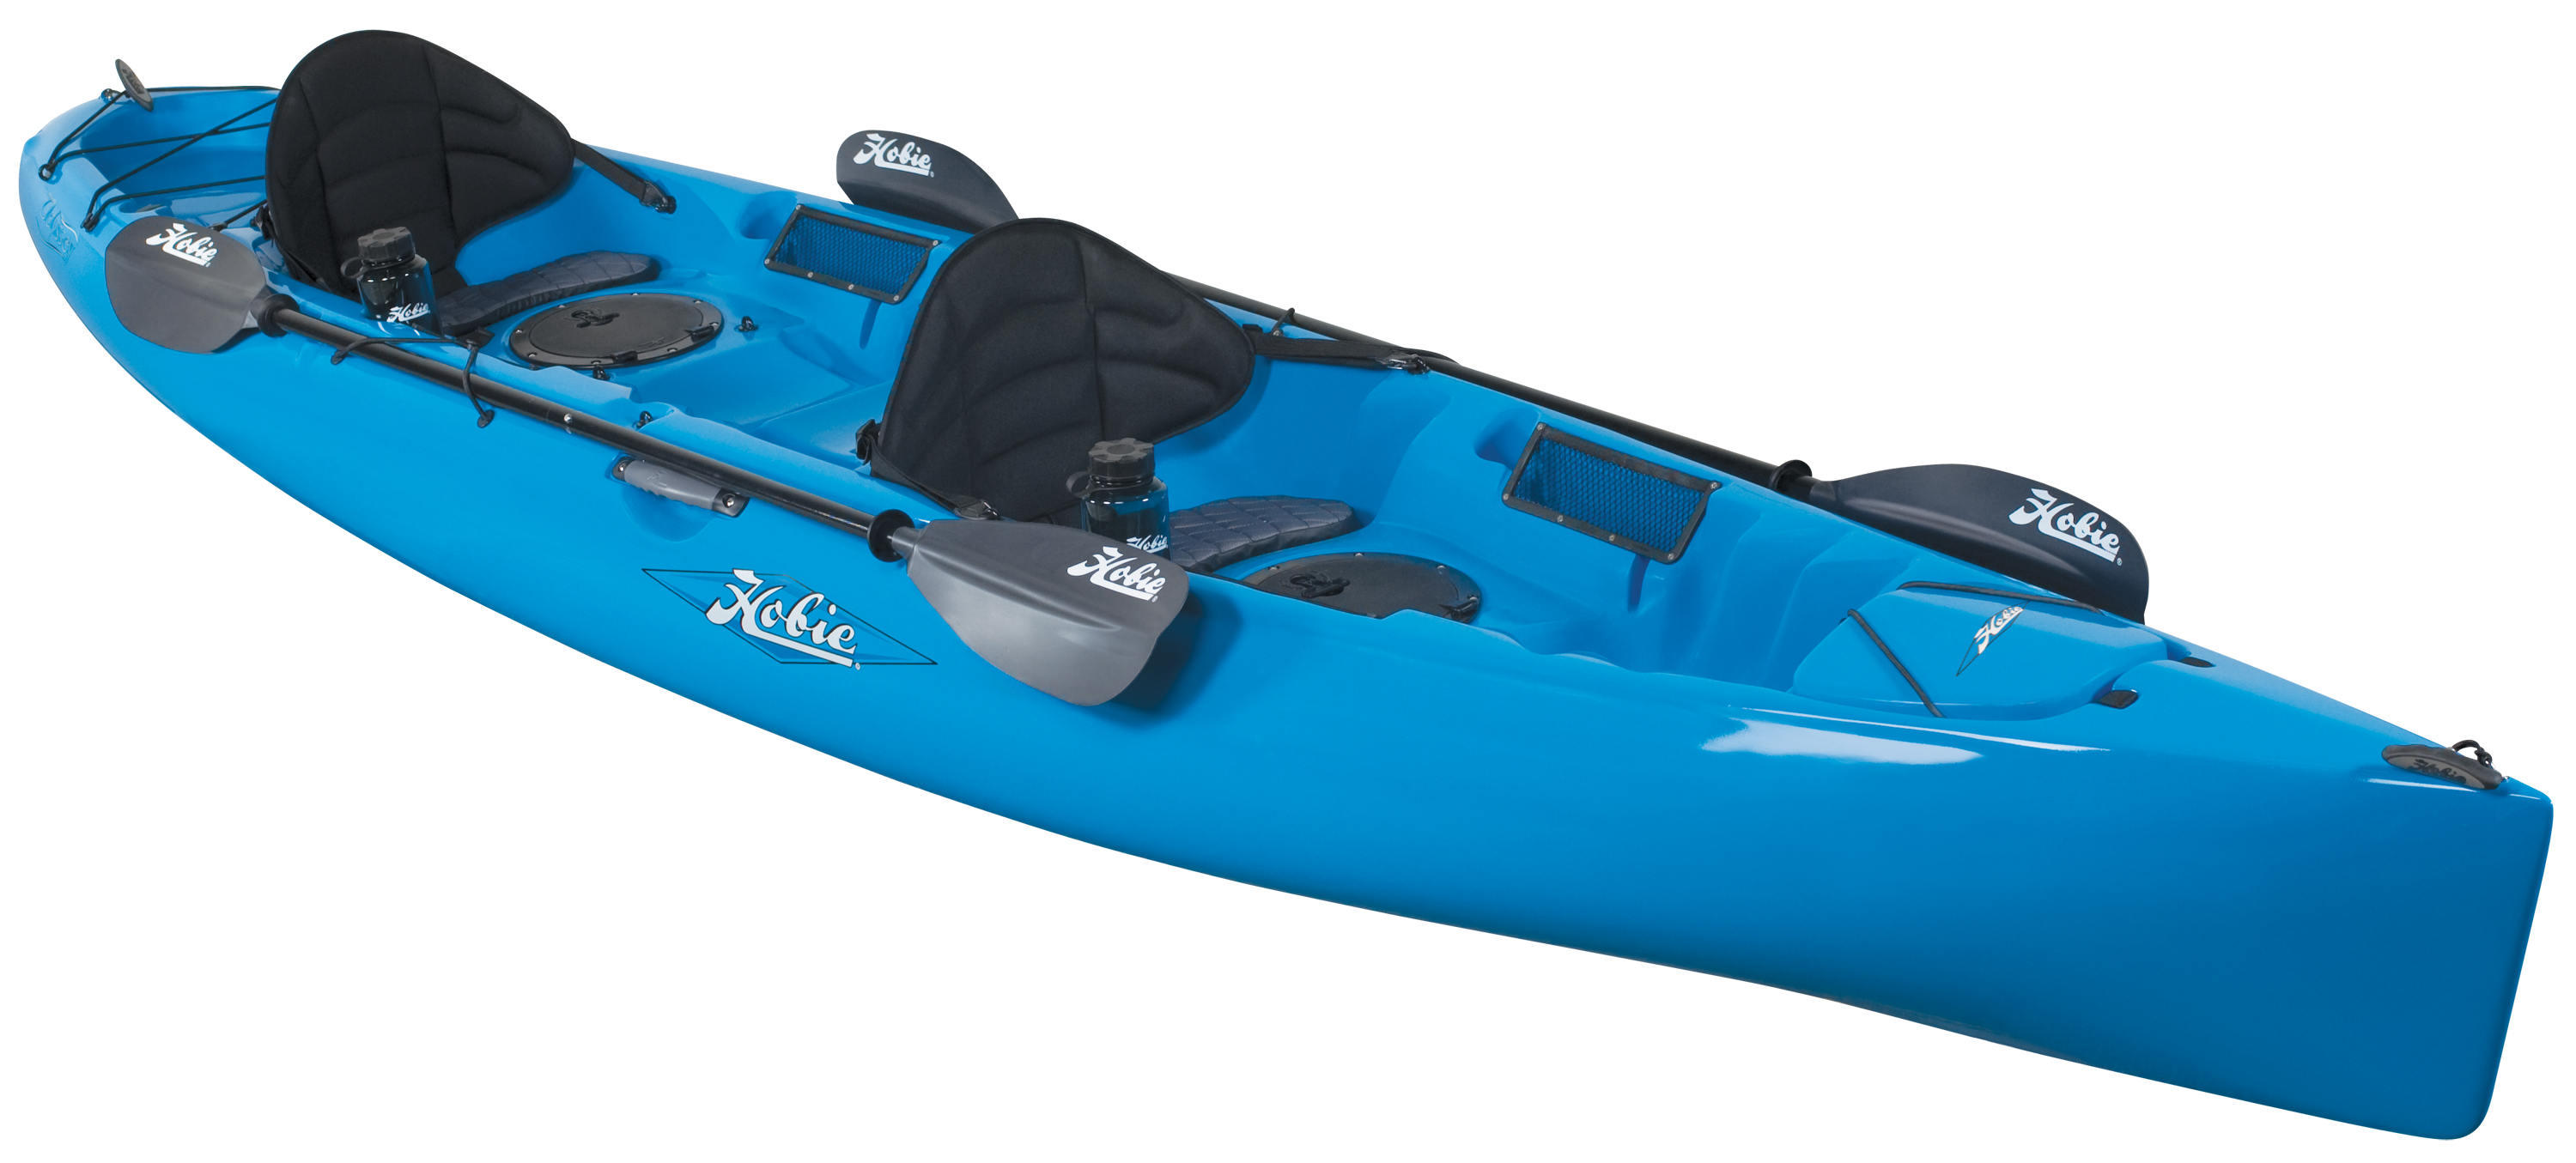 Hobie cat introduces two tandem kayaks to arsenal of for Tandem fishing kayak